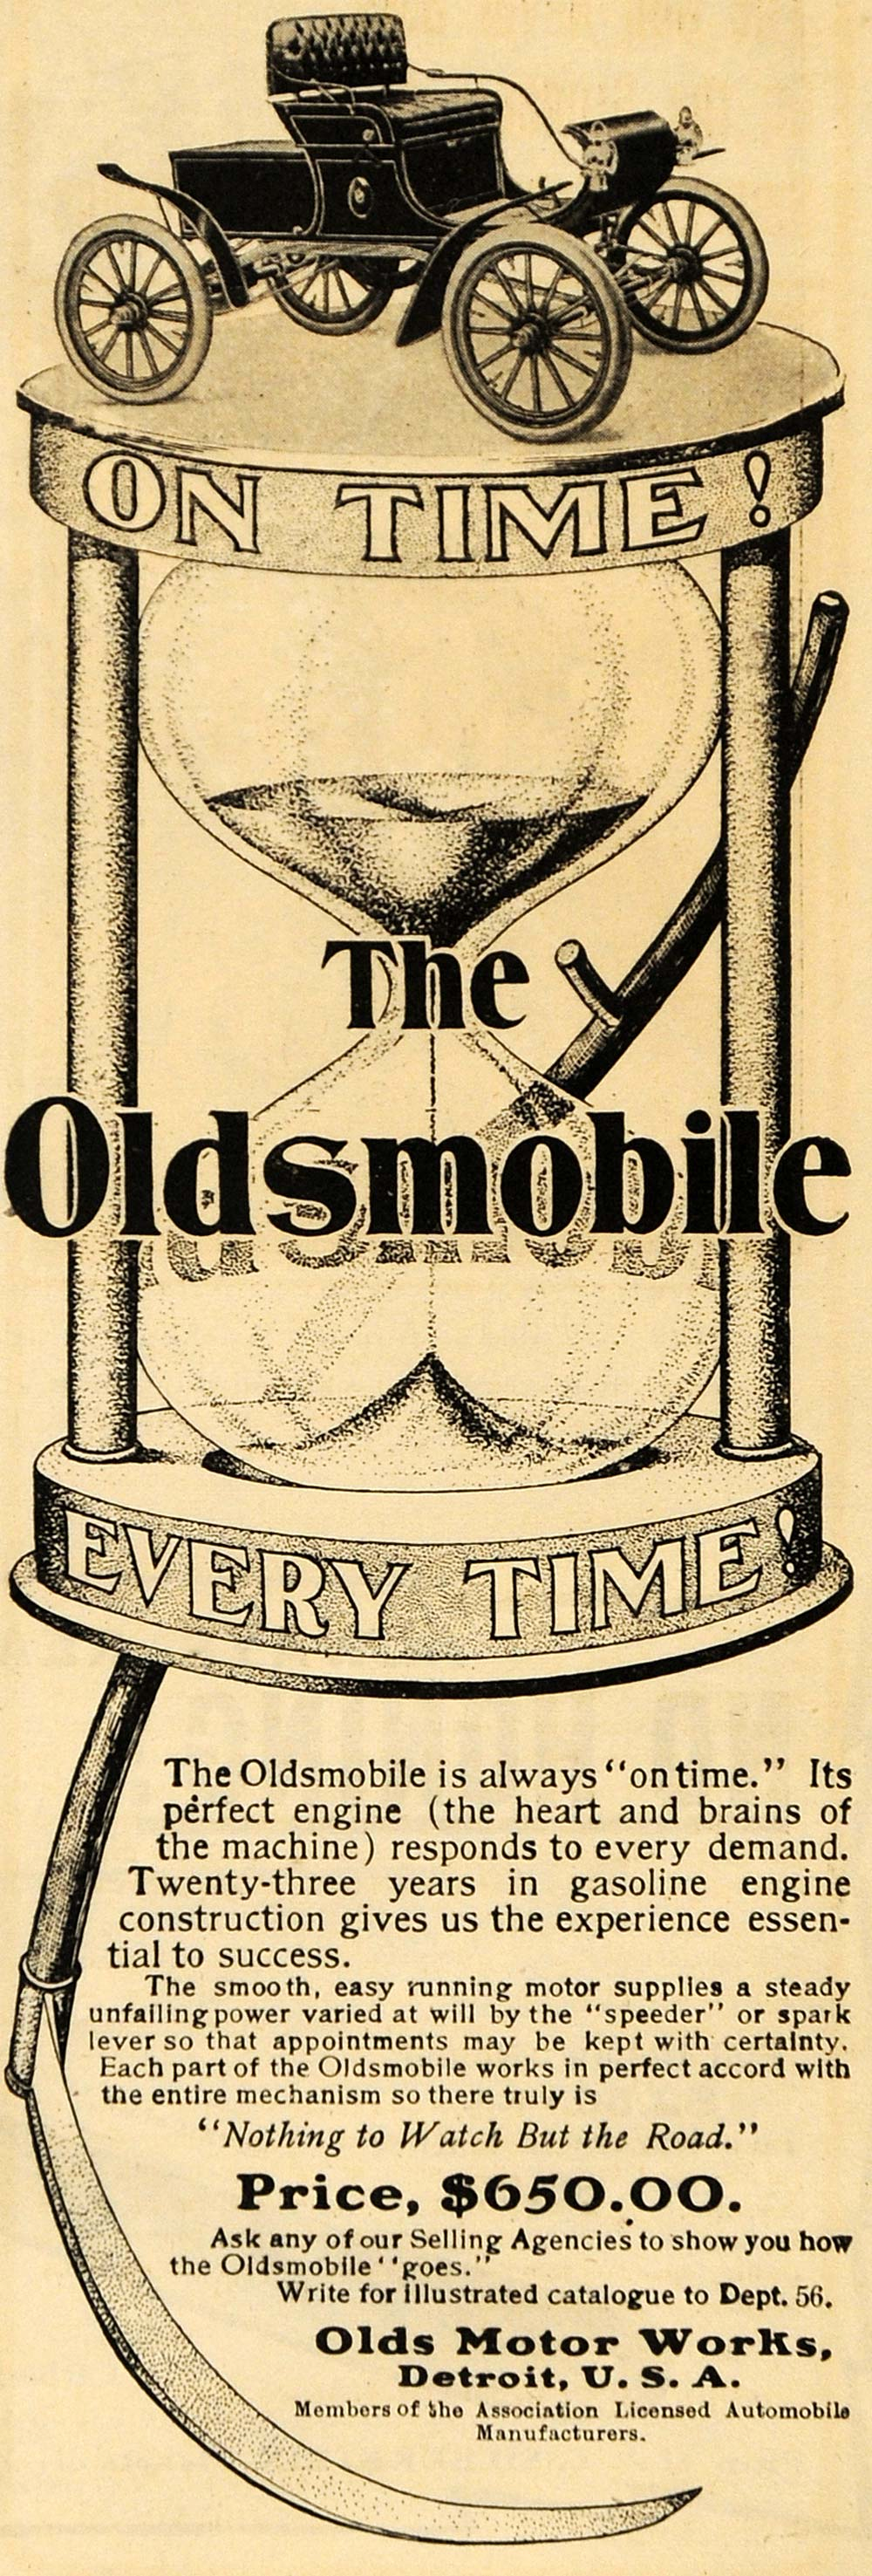 1903 Ad Olds Motor Works Antique Oldsmobile Car Auto Hourglass Detroit ARG1